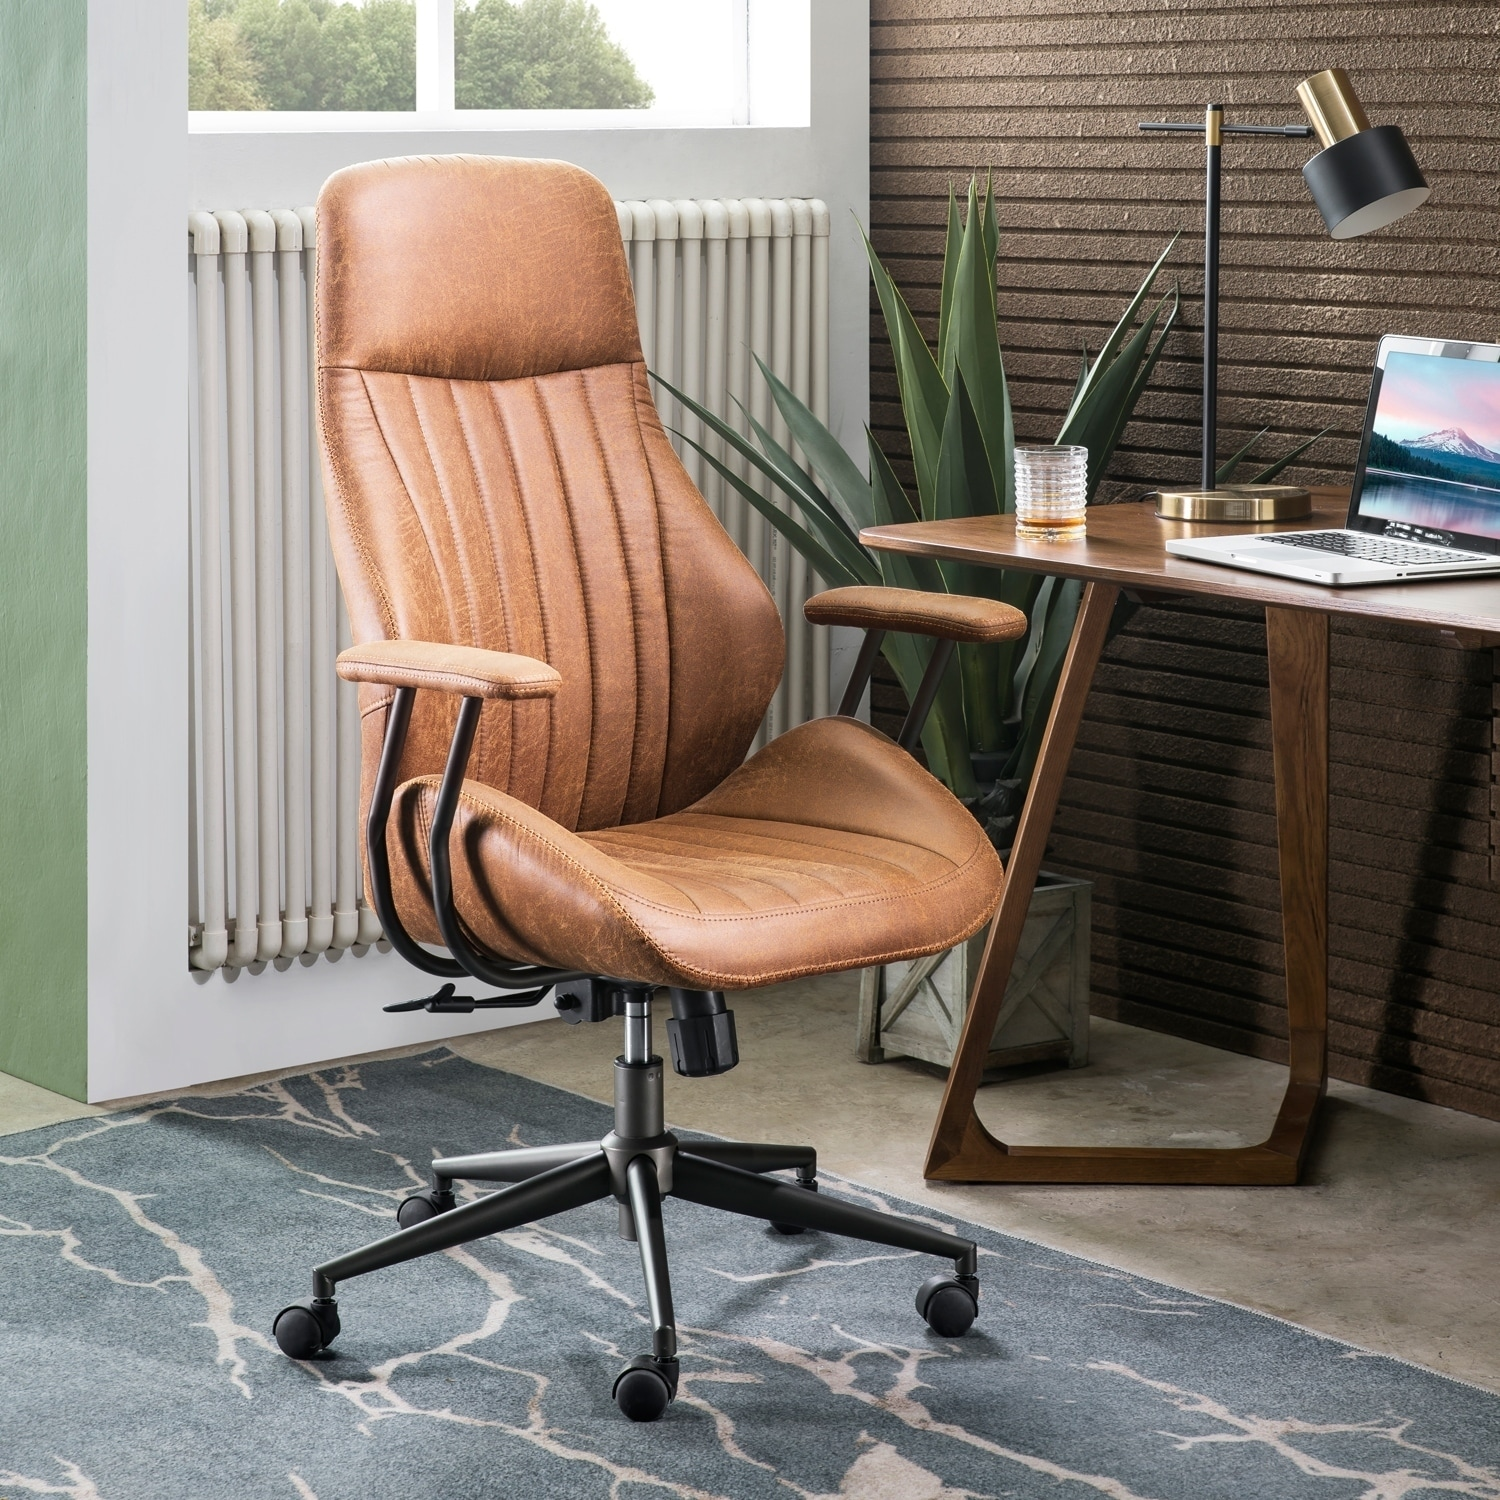 OVIOS Ergonomic Office Chair Modern Computer Desk Chair high Back Suede Fabric Desk Chair with Lumbar Support - On Sale - Overstock - 30234960